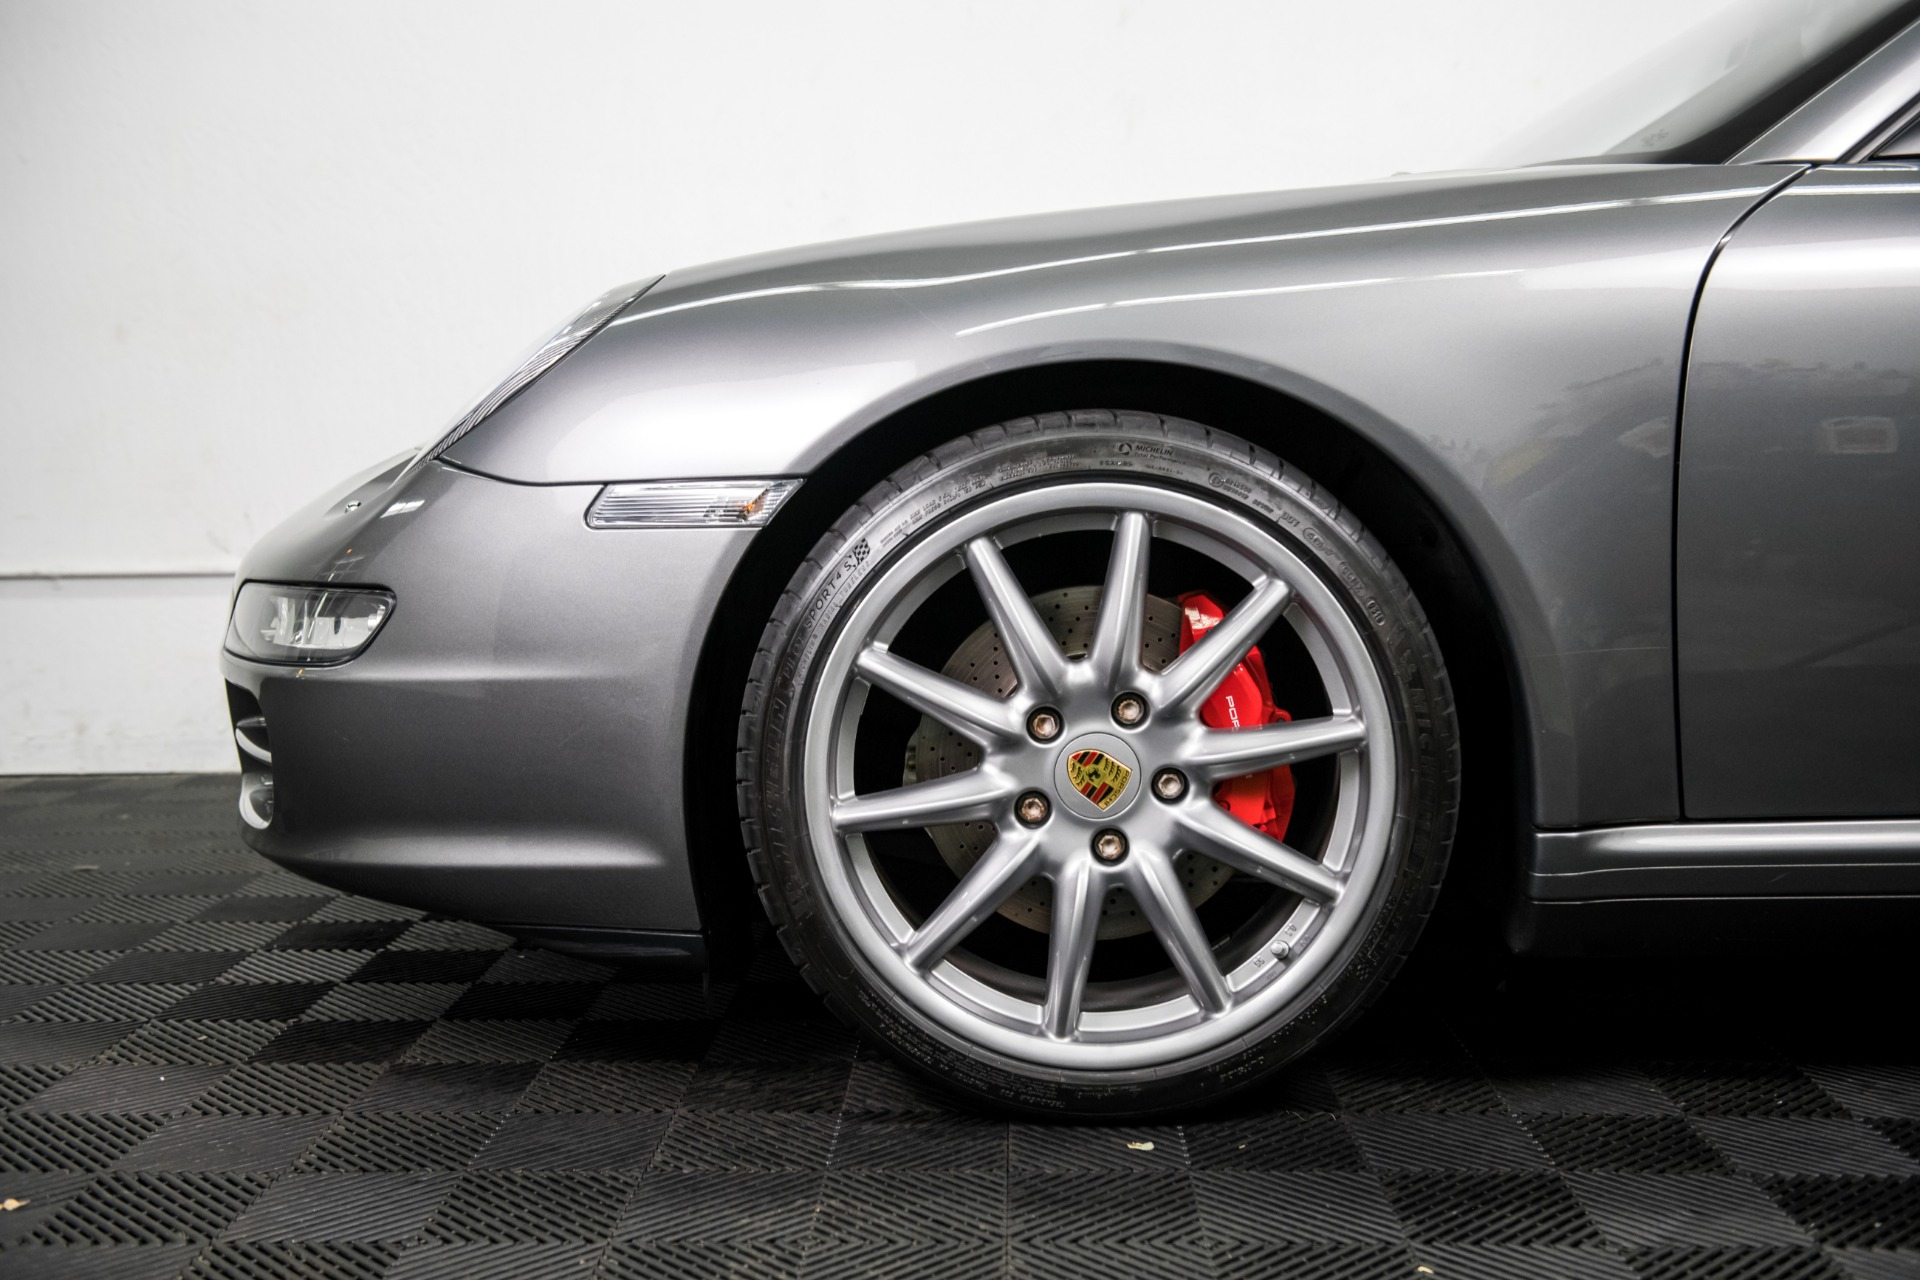 Used 2008 Porsche 911 Carrera 4S Used 2008 Porsche 911 Carrera 4S for sale $48,999 at Response Motors in Mountain View CA 10